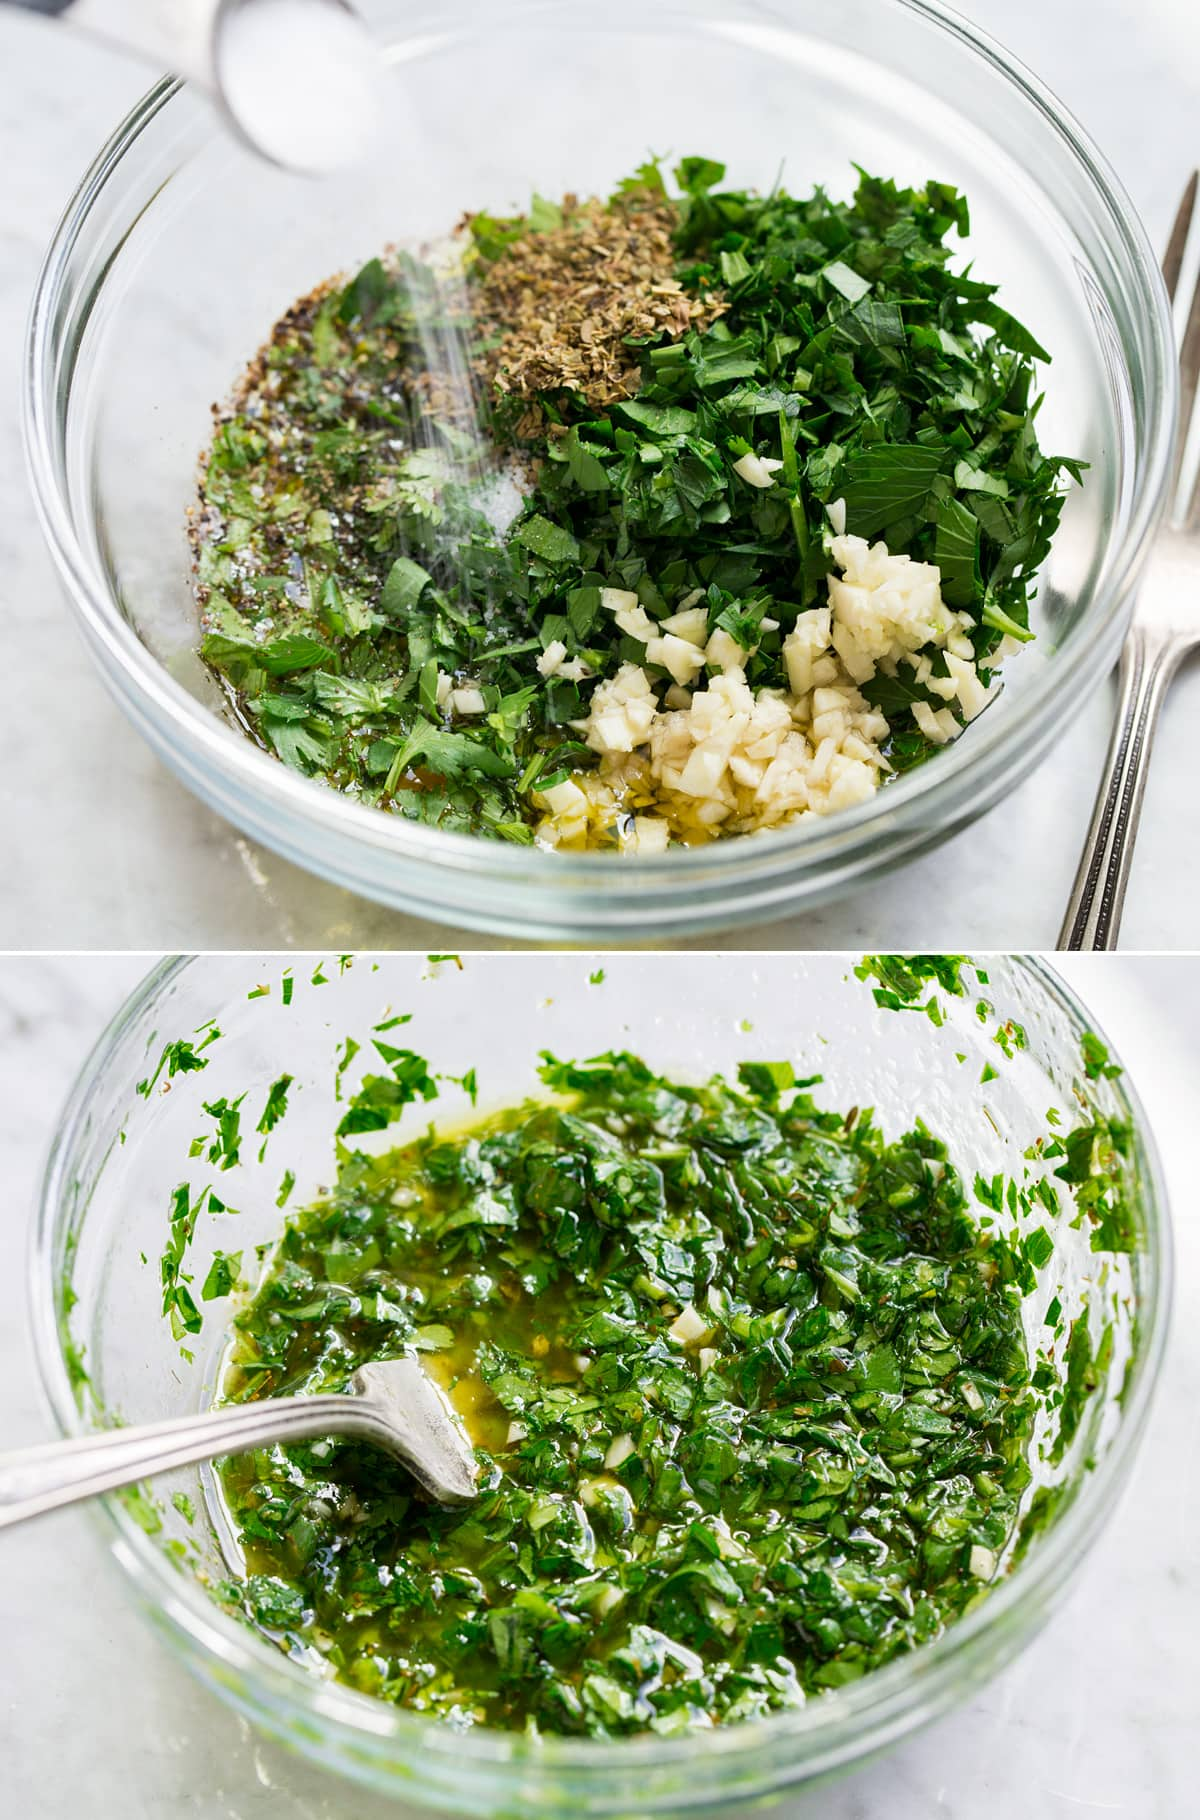 Avocado salad dressing being mixed in a glass bowl. Shown before and after mixing.